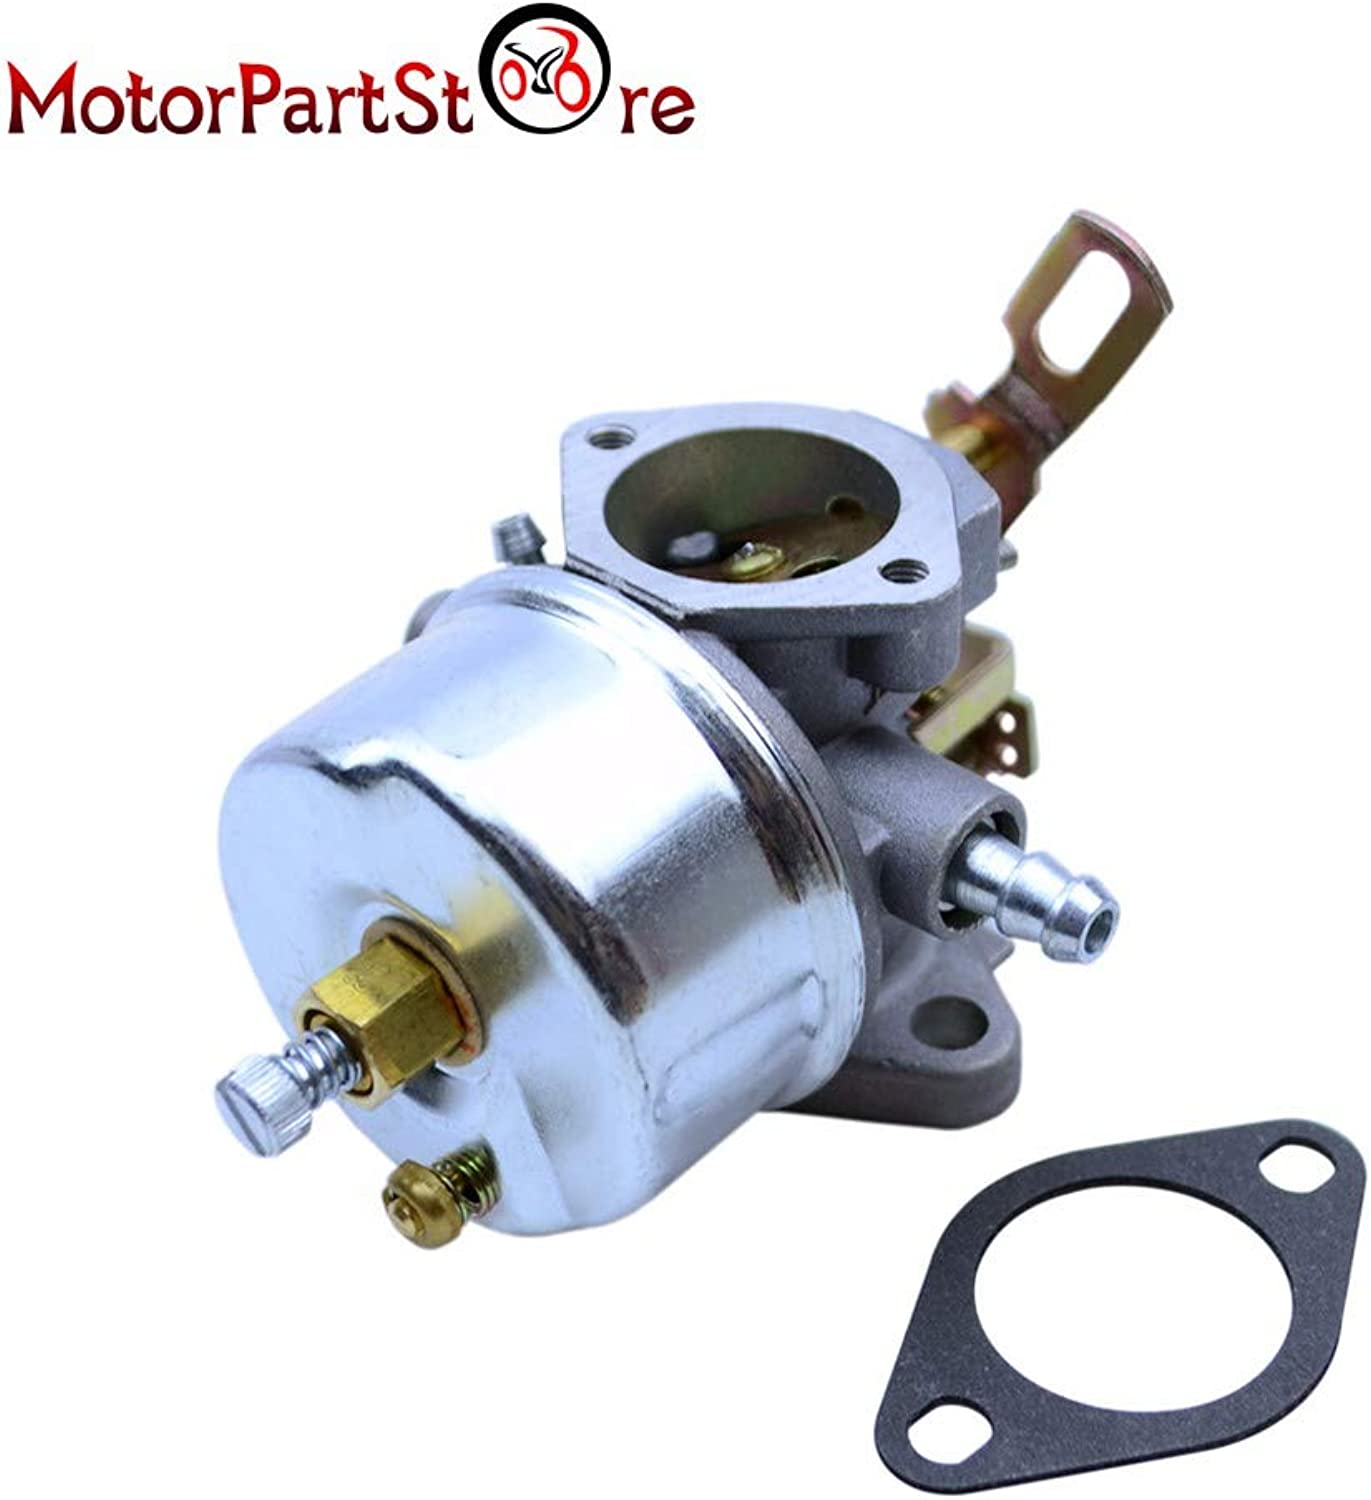 LySanSanCarburetor with Gasket for John Deere Snowblower 526 726 732 826 826D 828D 832 1032 1032D Carb